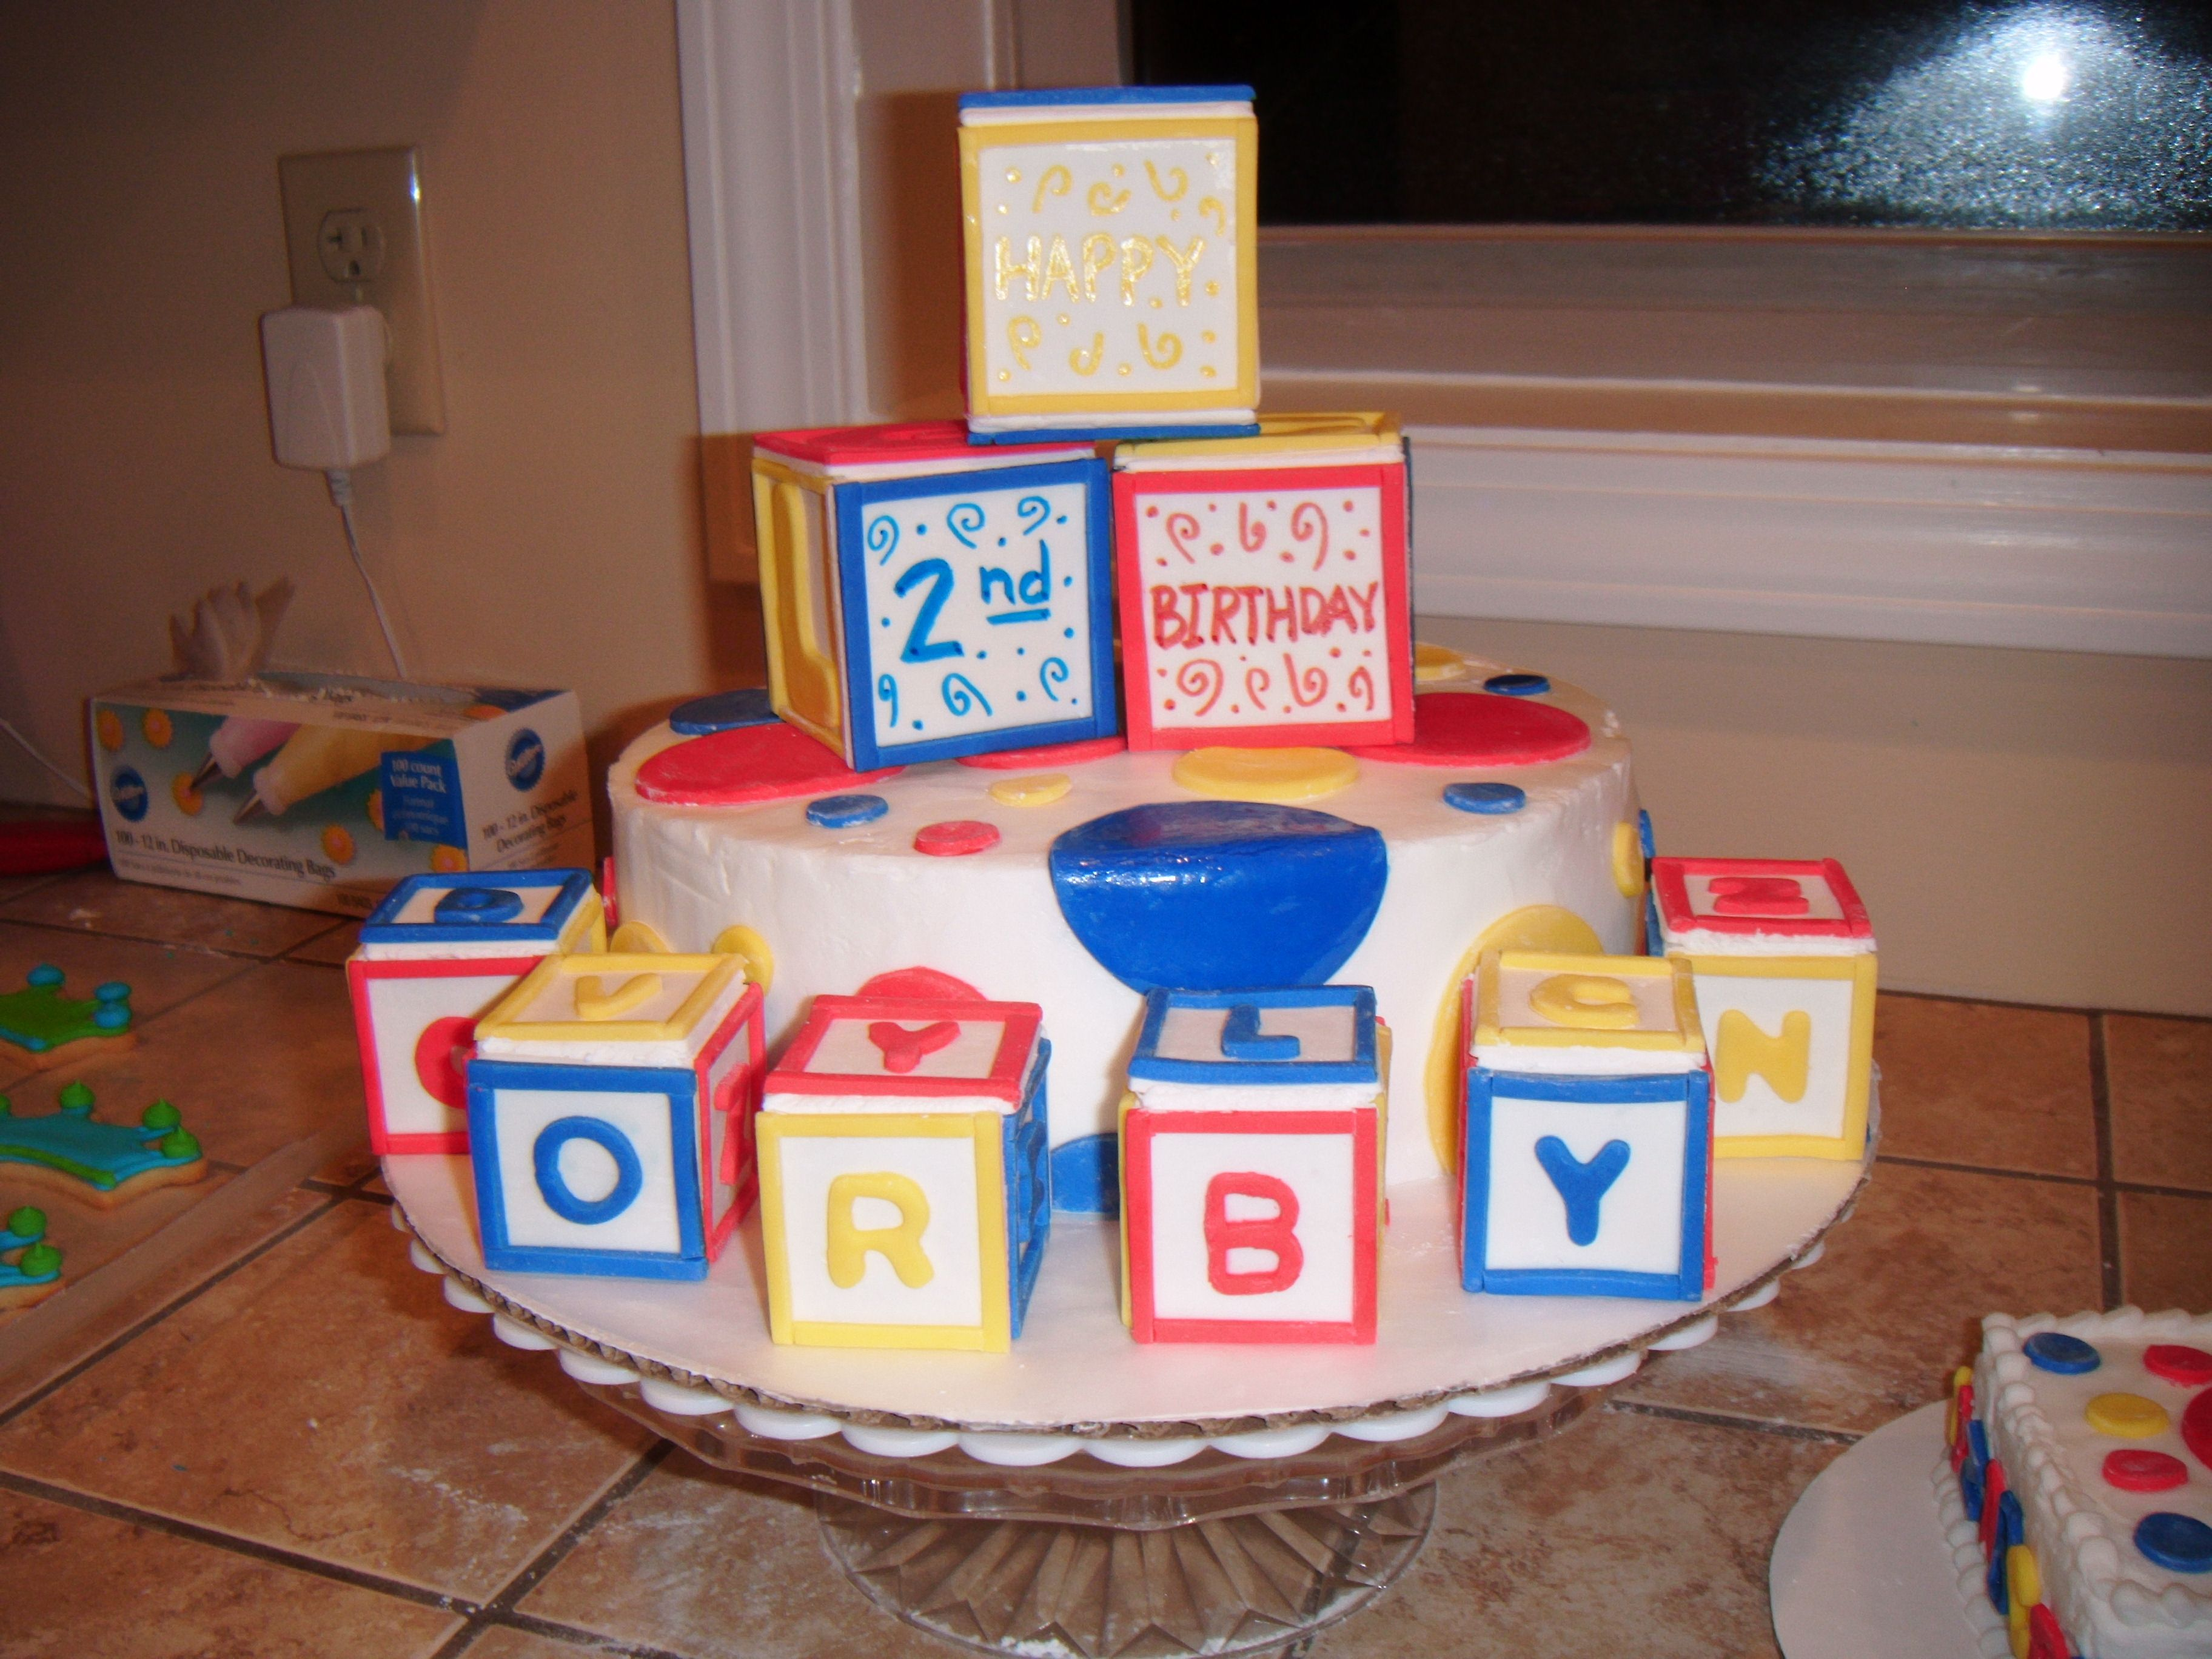 ABC block cake I made for Suzanne Baker